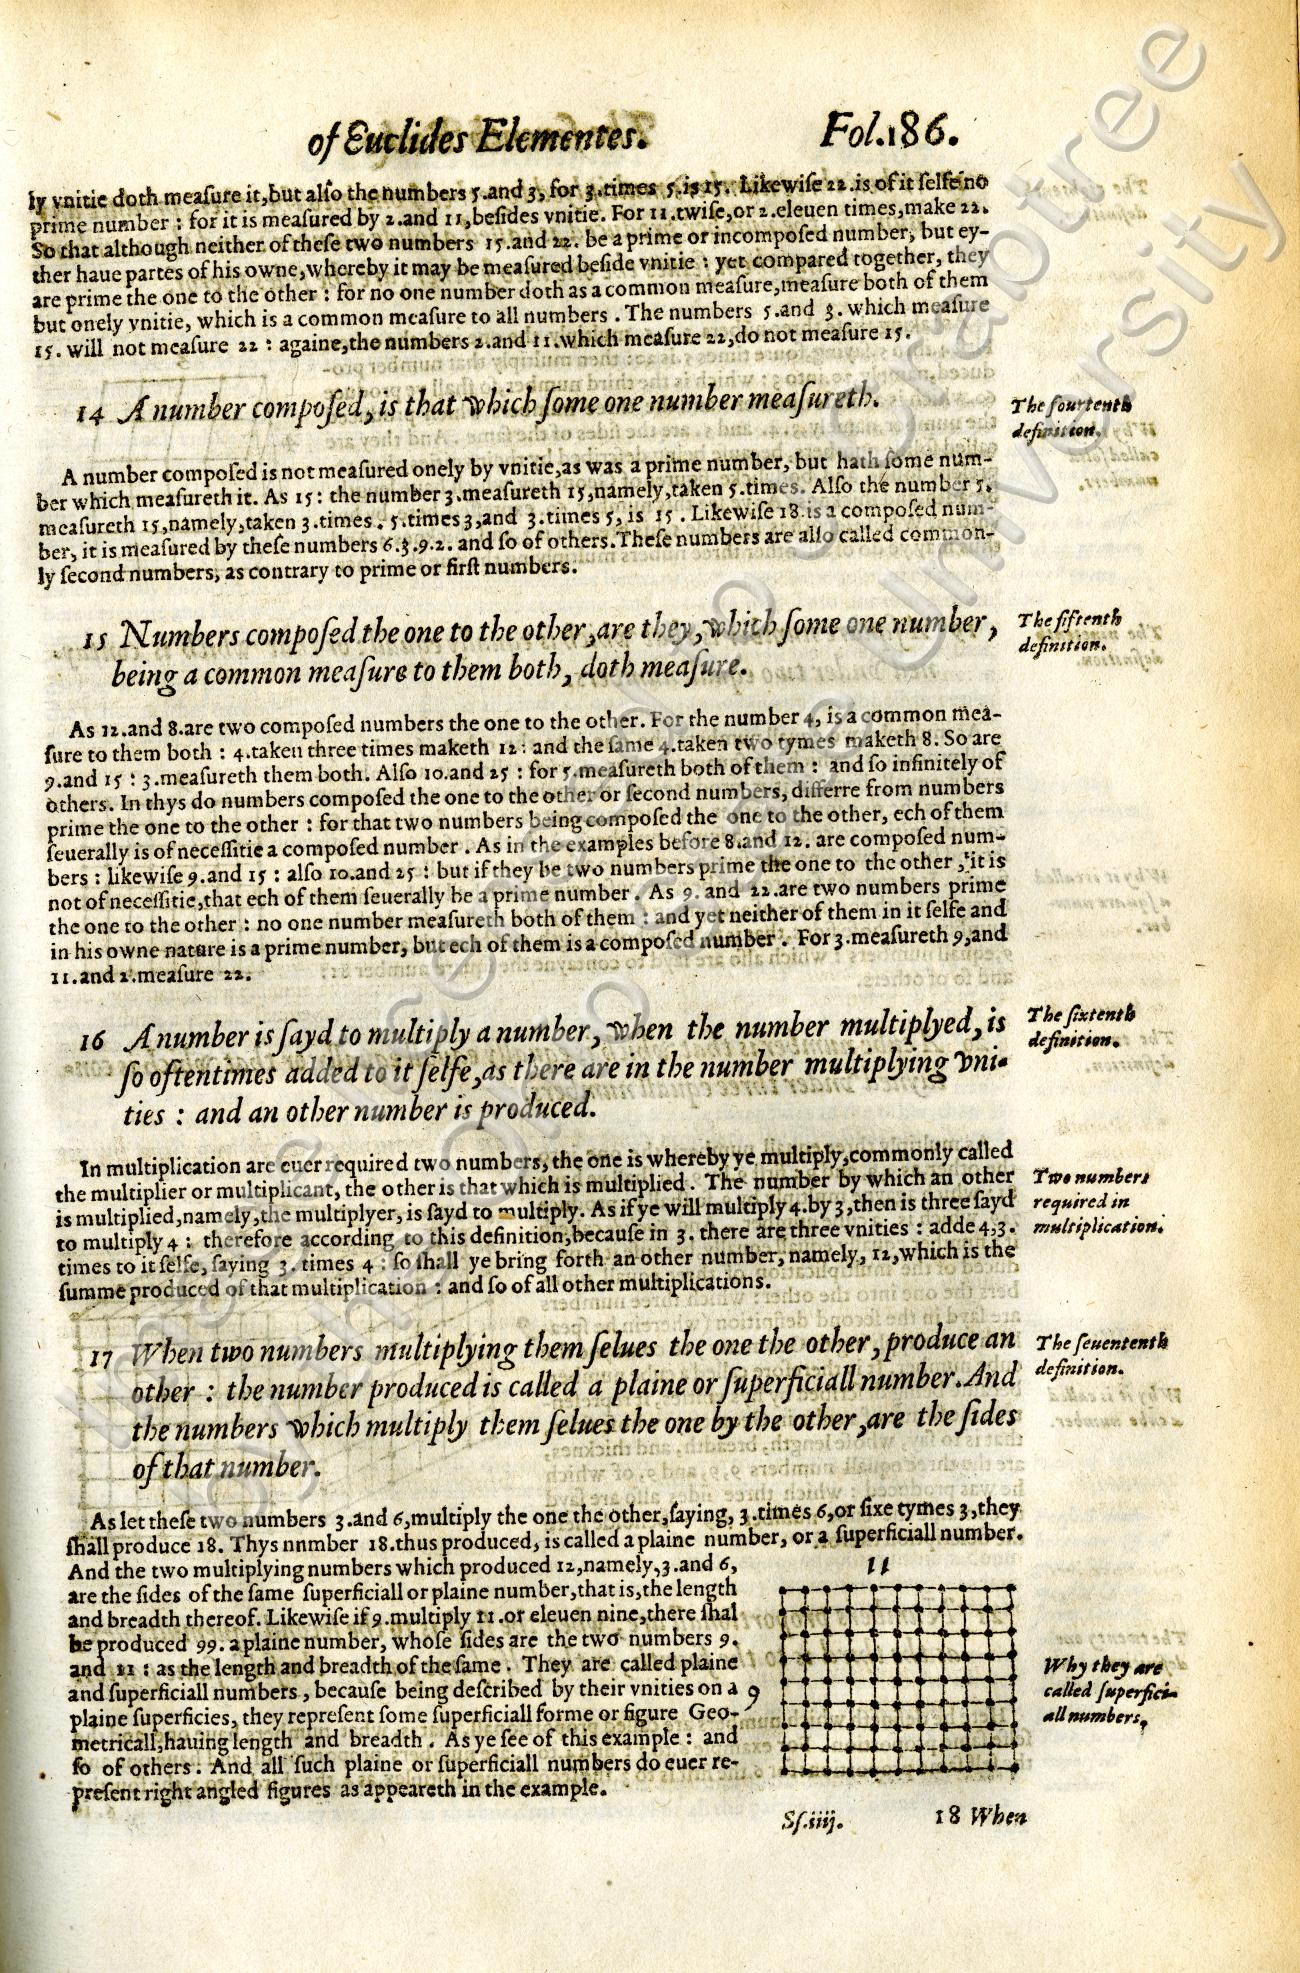 Henry Billingsley's 1570 definition of multiplication (#16) from his translation into English of Euclid's Elements.